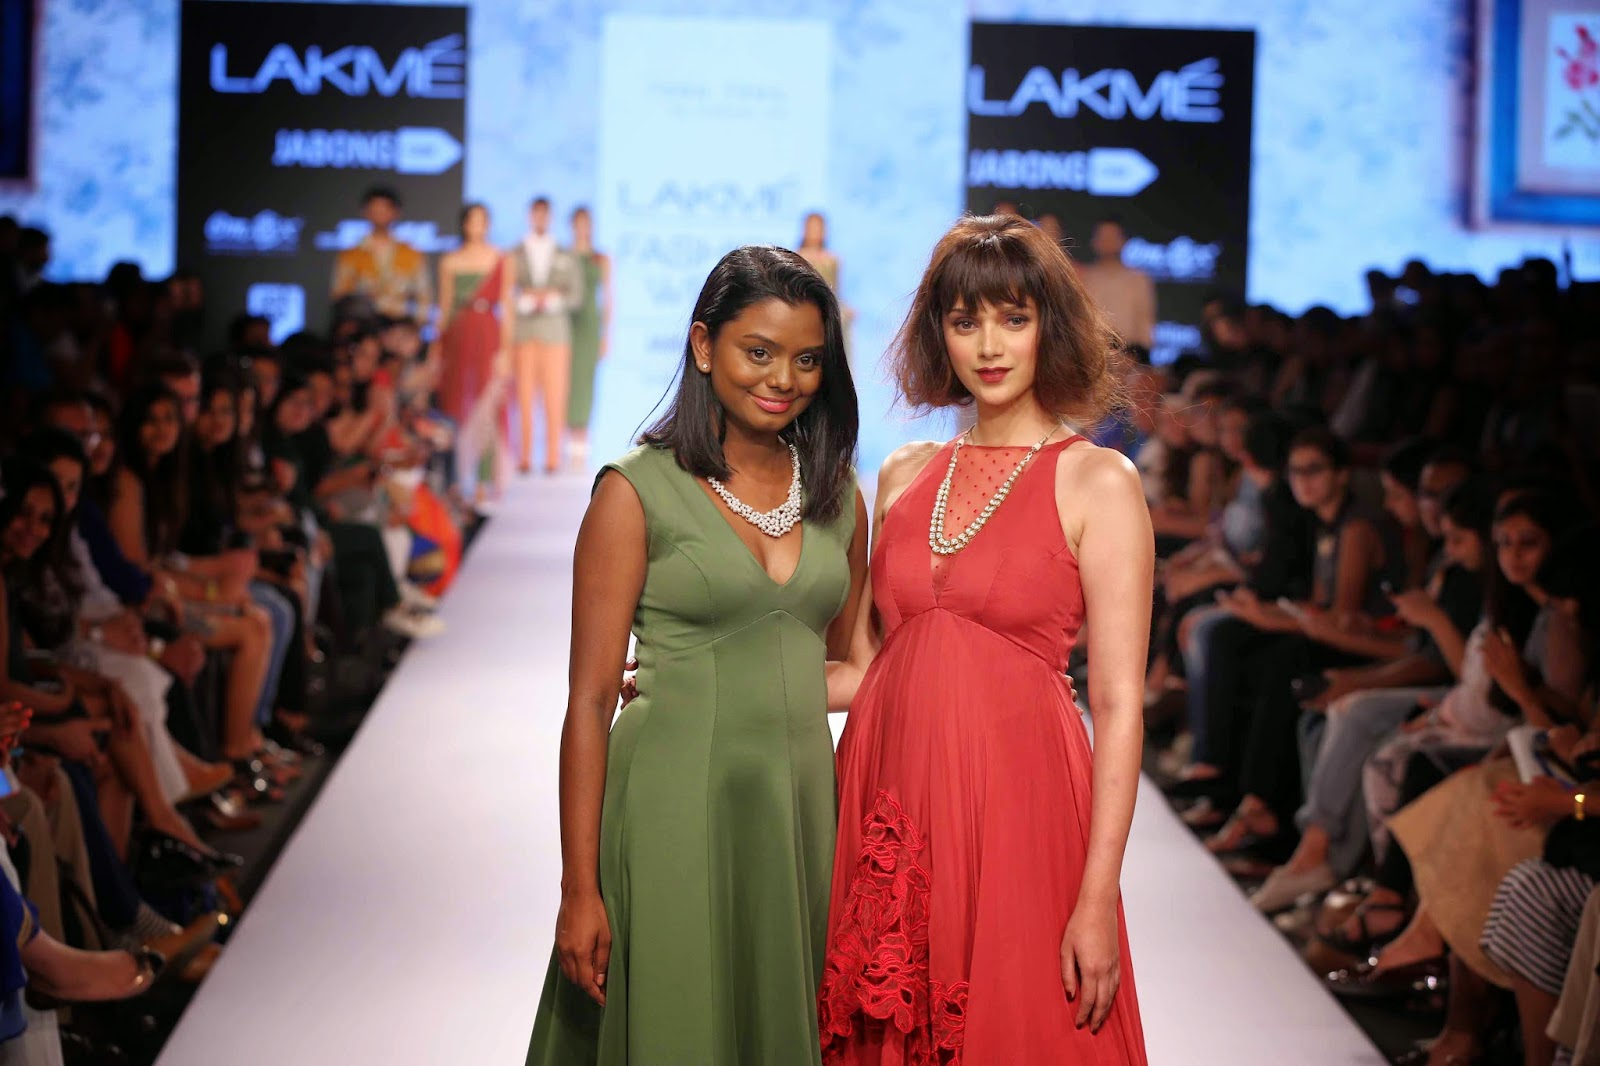 http://aquaintperspective.blogspot.in/, LIFW day 1, Frou Frou by Archana Rao